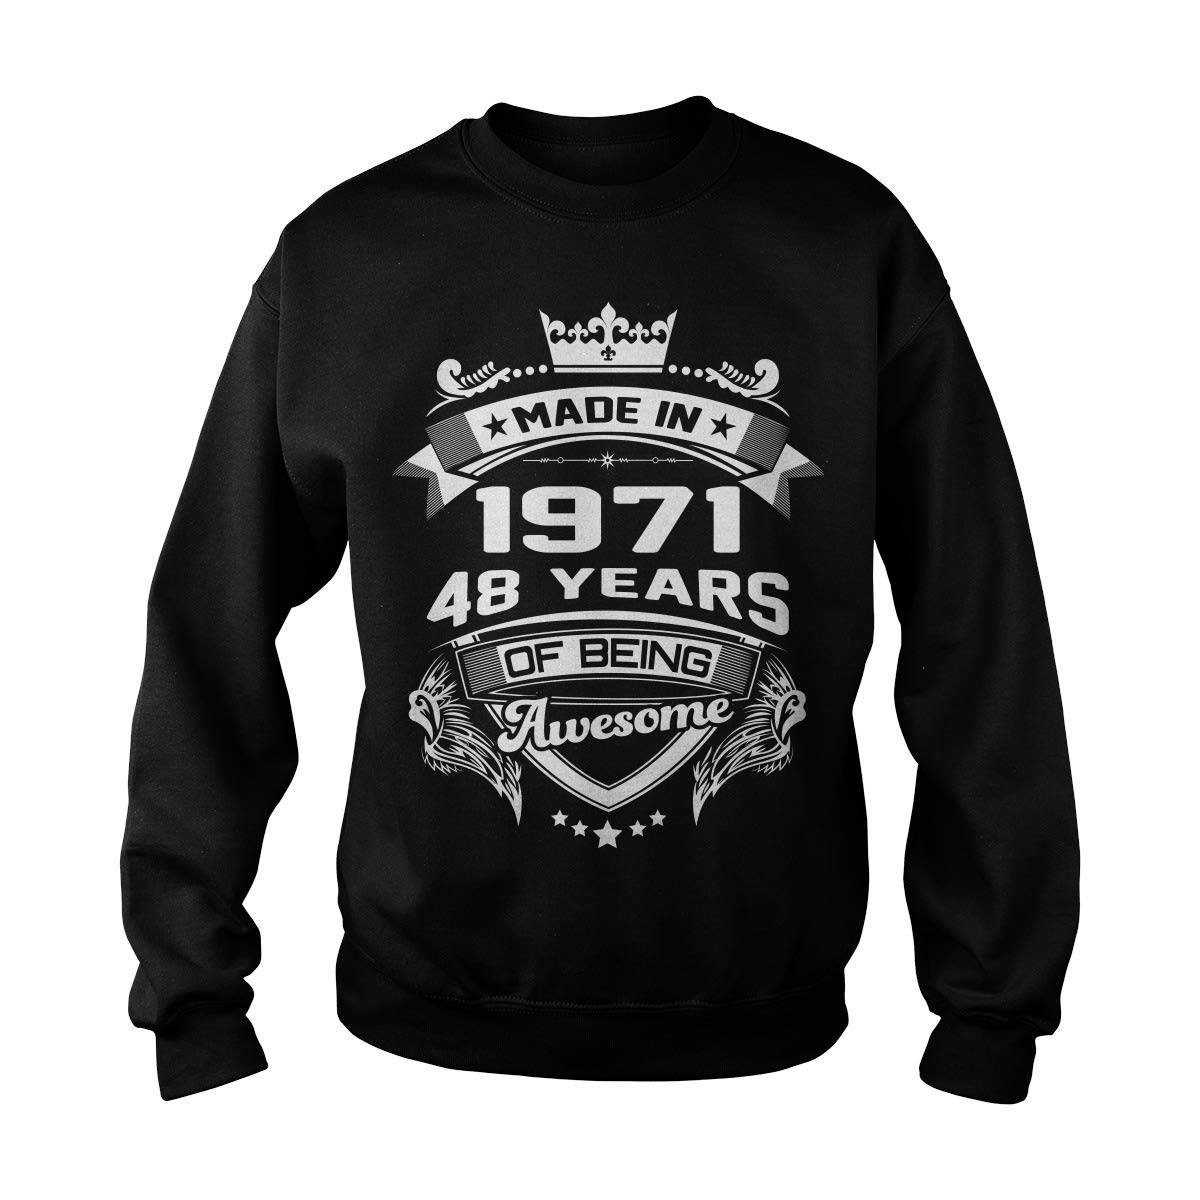 Made in 1971-48 Years of Being Awesome Adult Crewneck Sweatshirt